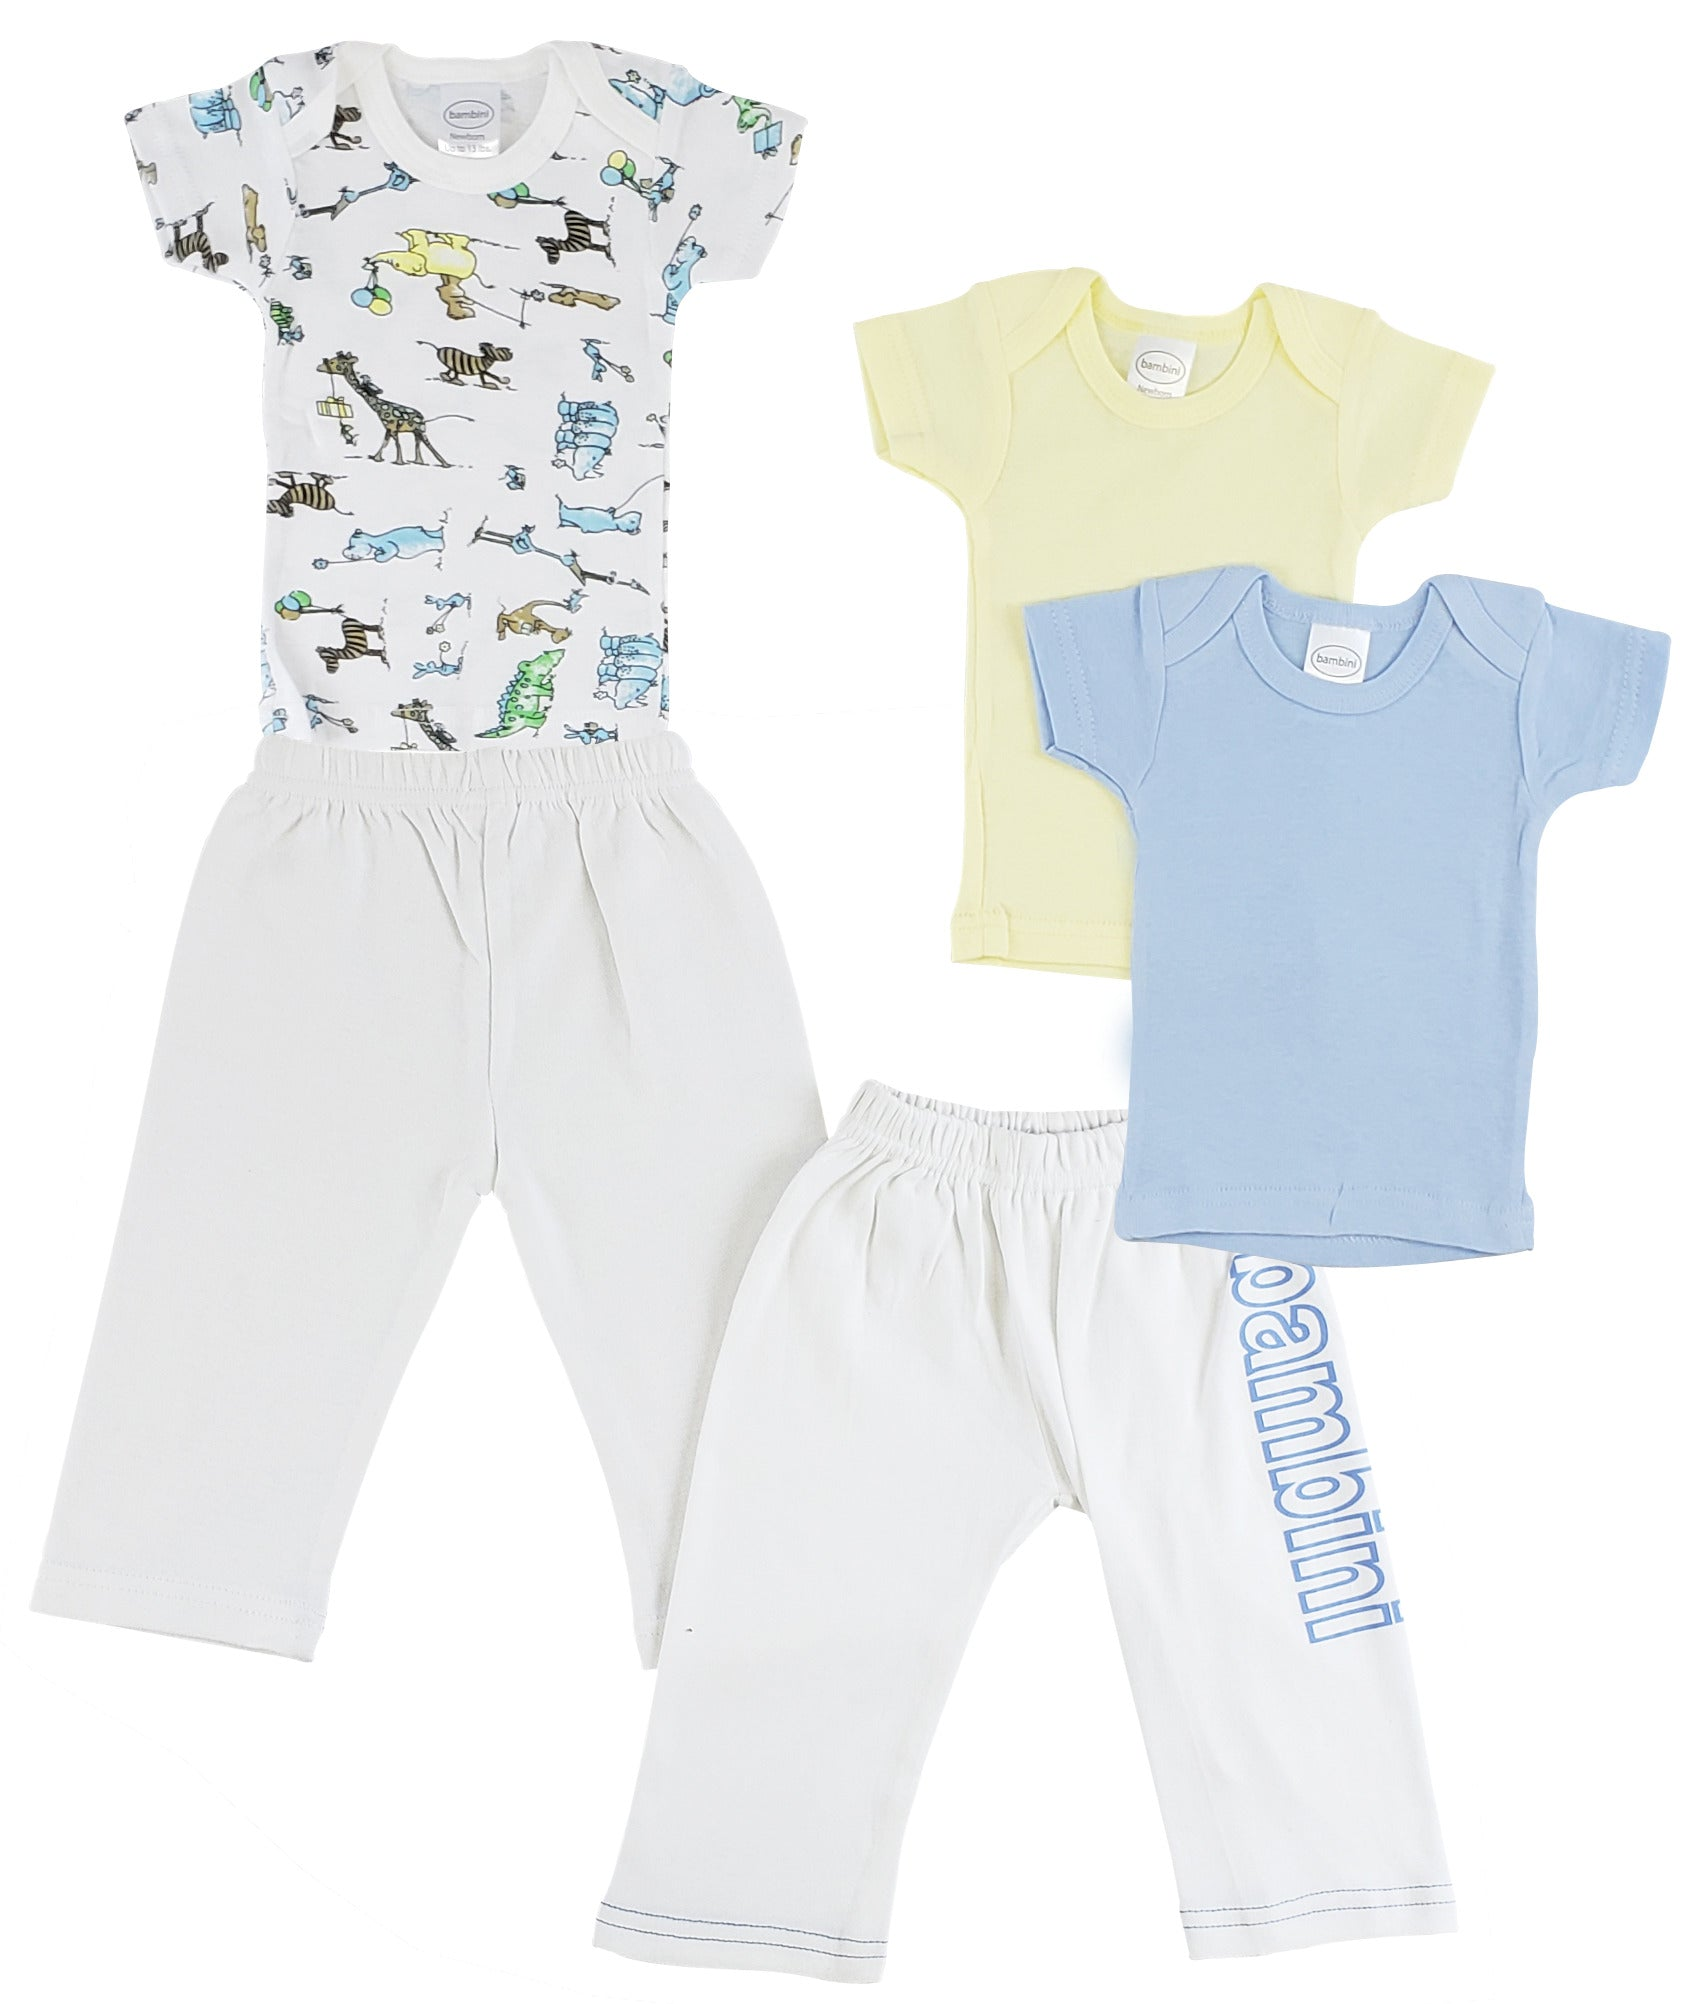 Infant Boys T-Shirts and Track Sweatpants